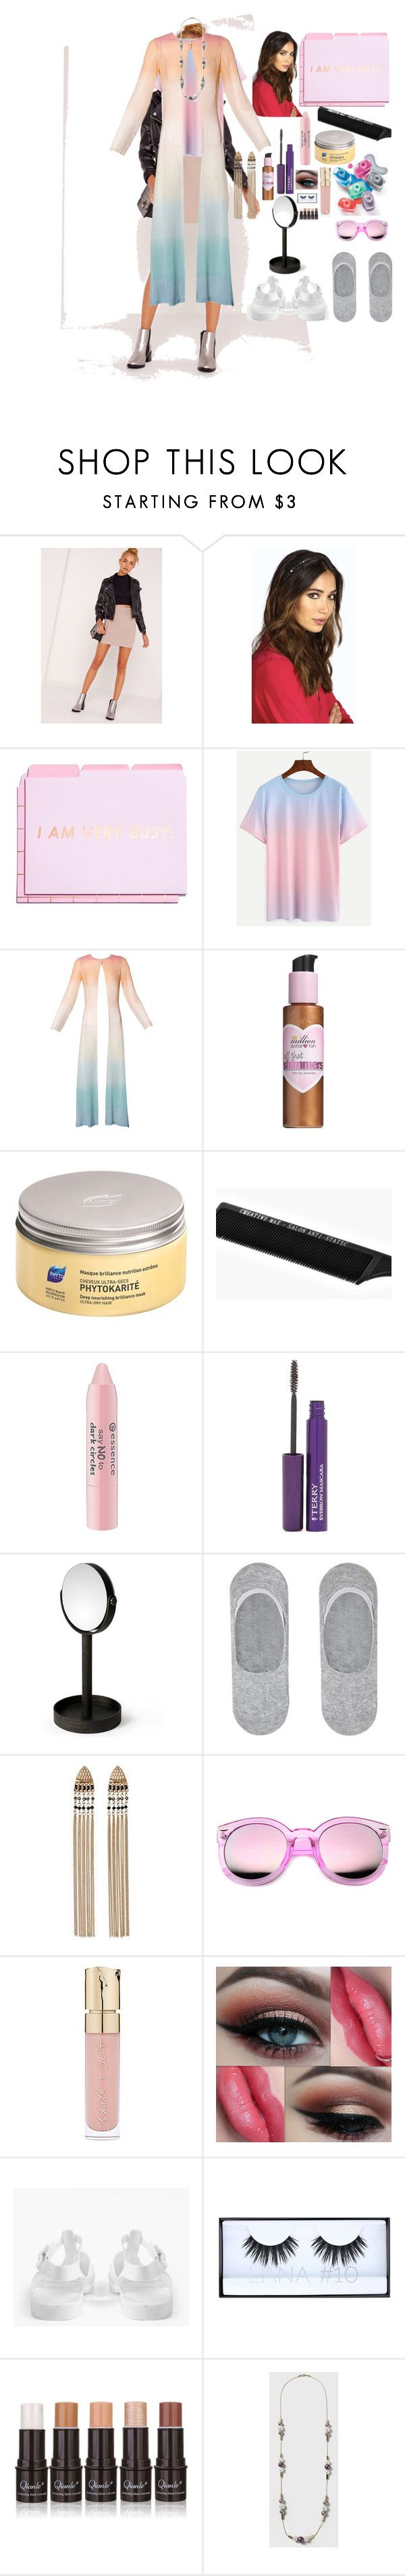 """scream queens"" by cheapchicceleb ❤ liked on Polyvore featuring Missguided, Boohoo, Louis Féraud, Million Dollar Tan, Phyto, Essence, Avon, By Terry, .wireworks and MANGO"